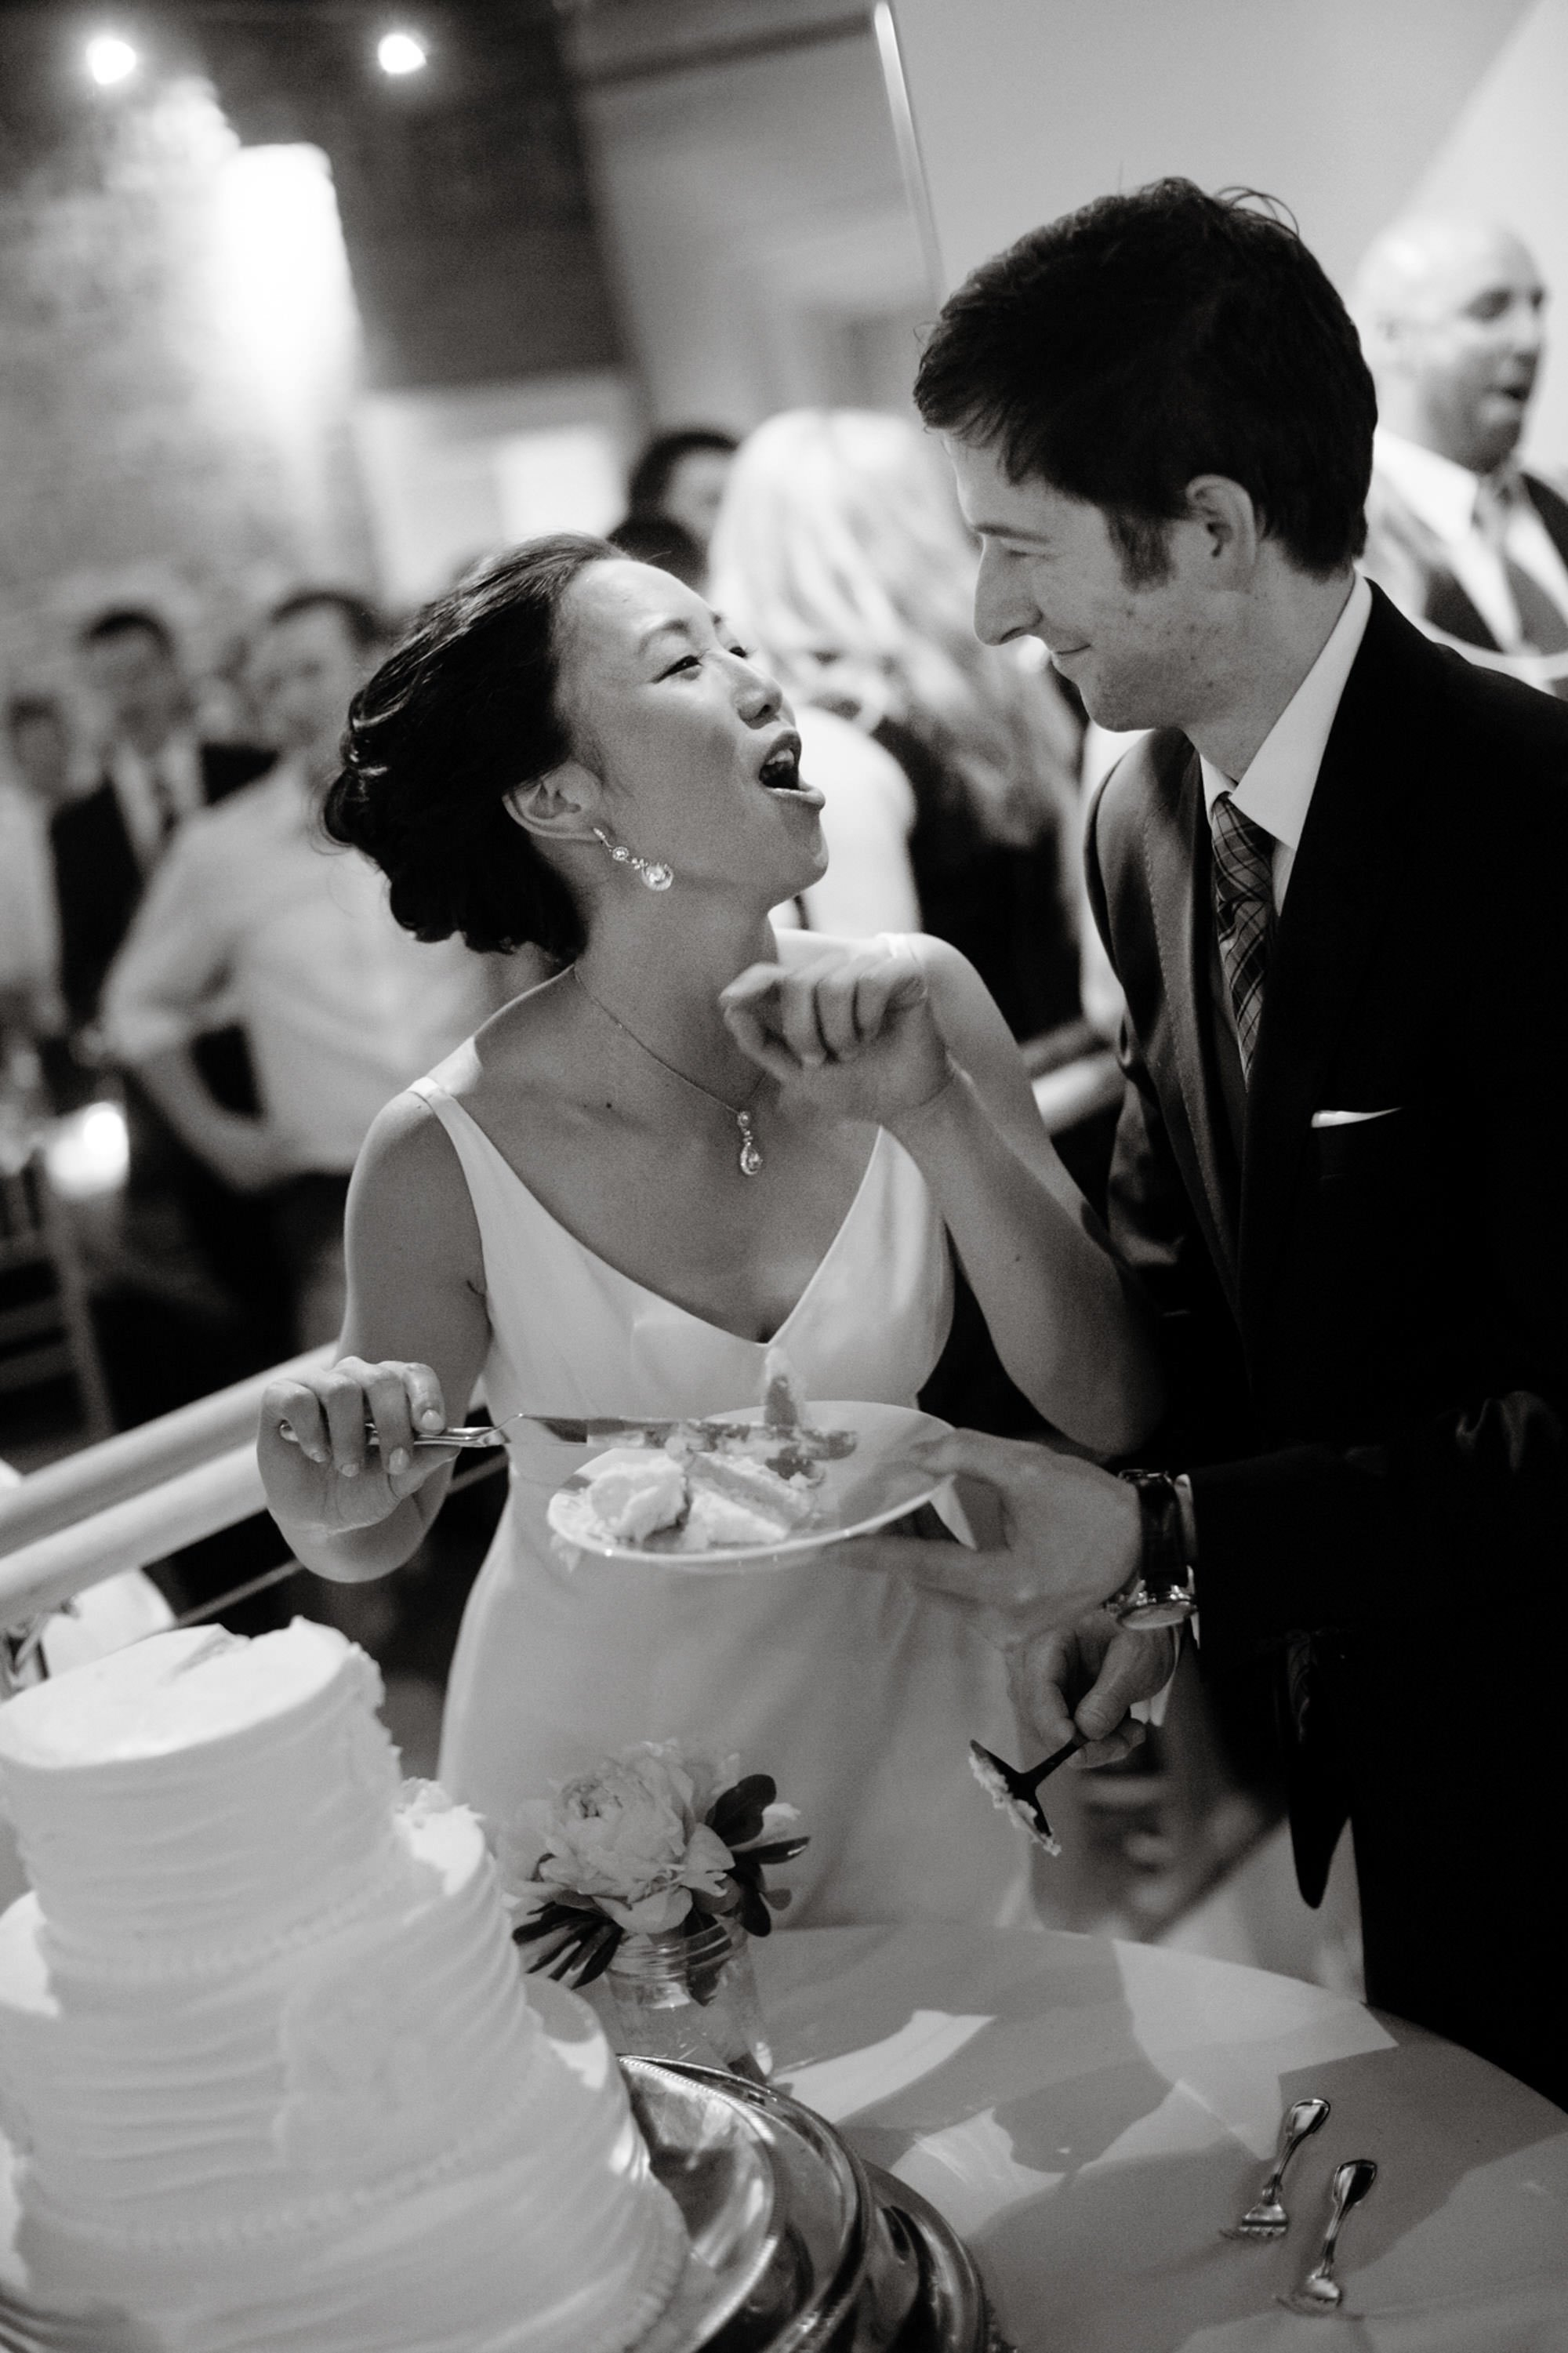 The bride and groom cut the cake during their Epic Yoga Studio wedding.